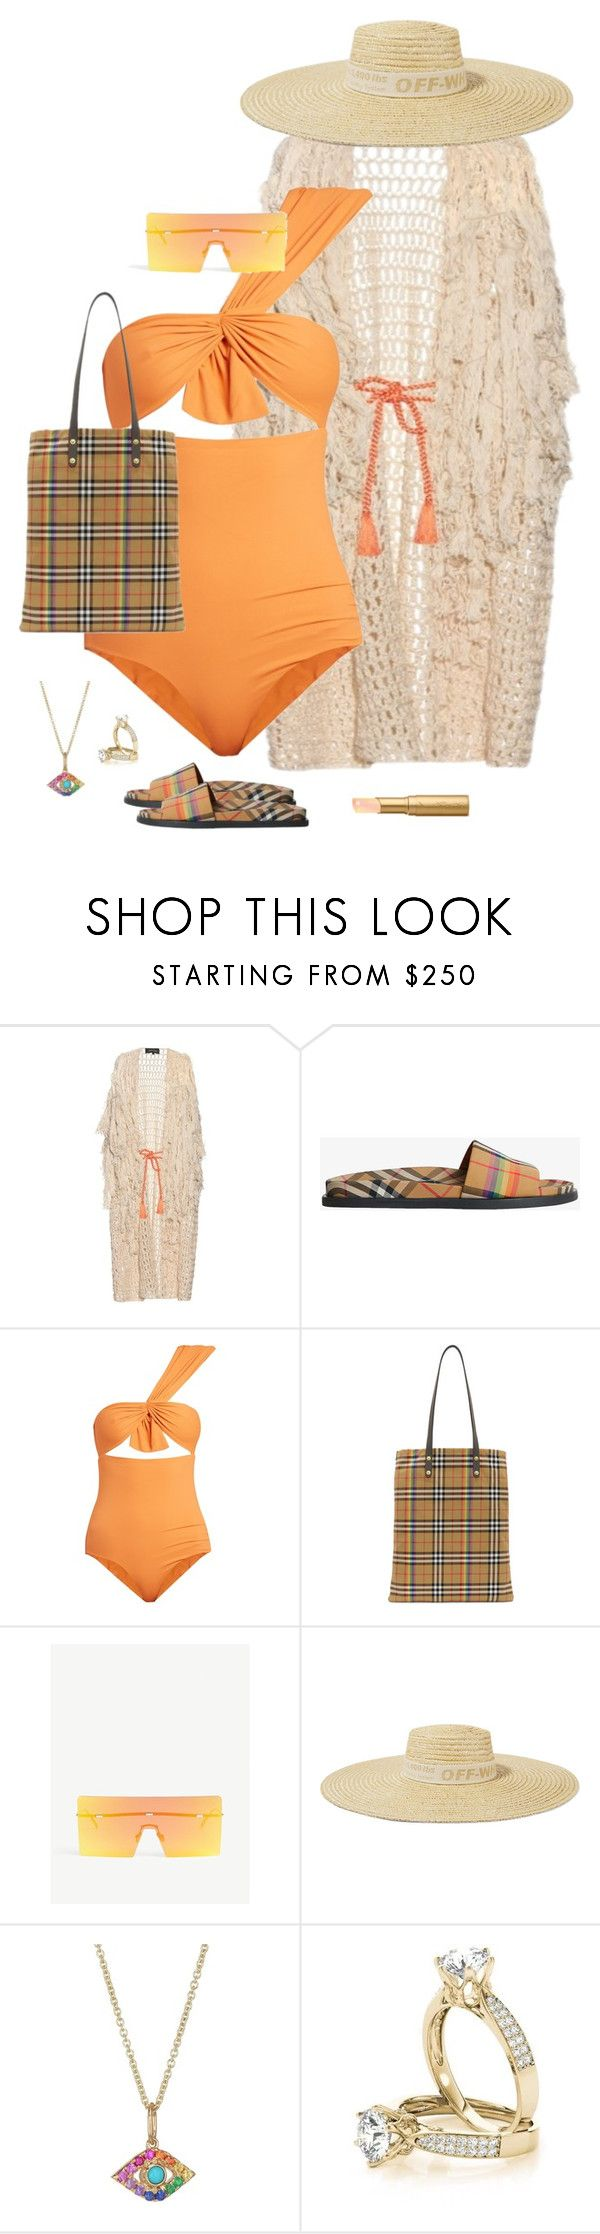 """Untitled #636"" by stephstyles508 ❤ liked on Polyvore featuring Tabula Rasa, Burberry, Marysia Swim, Christian Dior, Off-White, Sydney Evan and Too Faced Cosmetics"